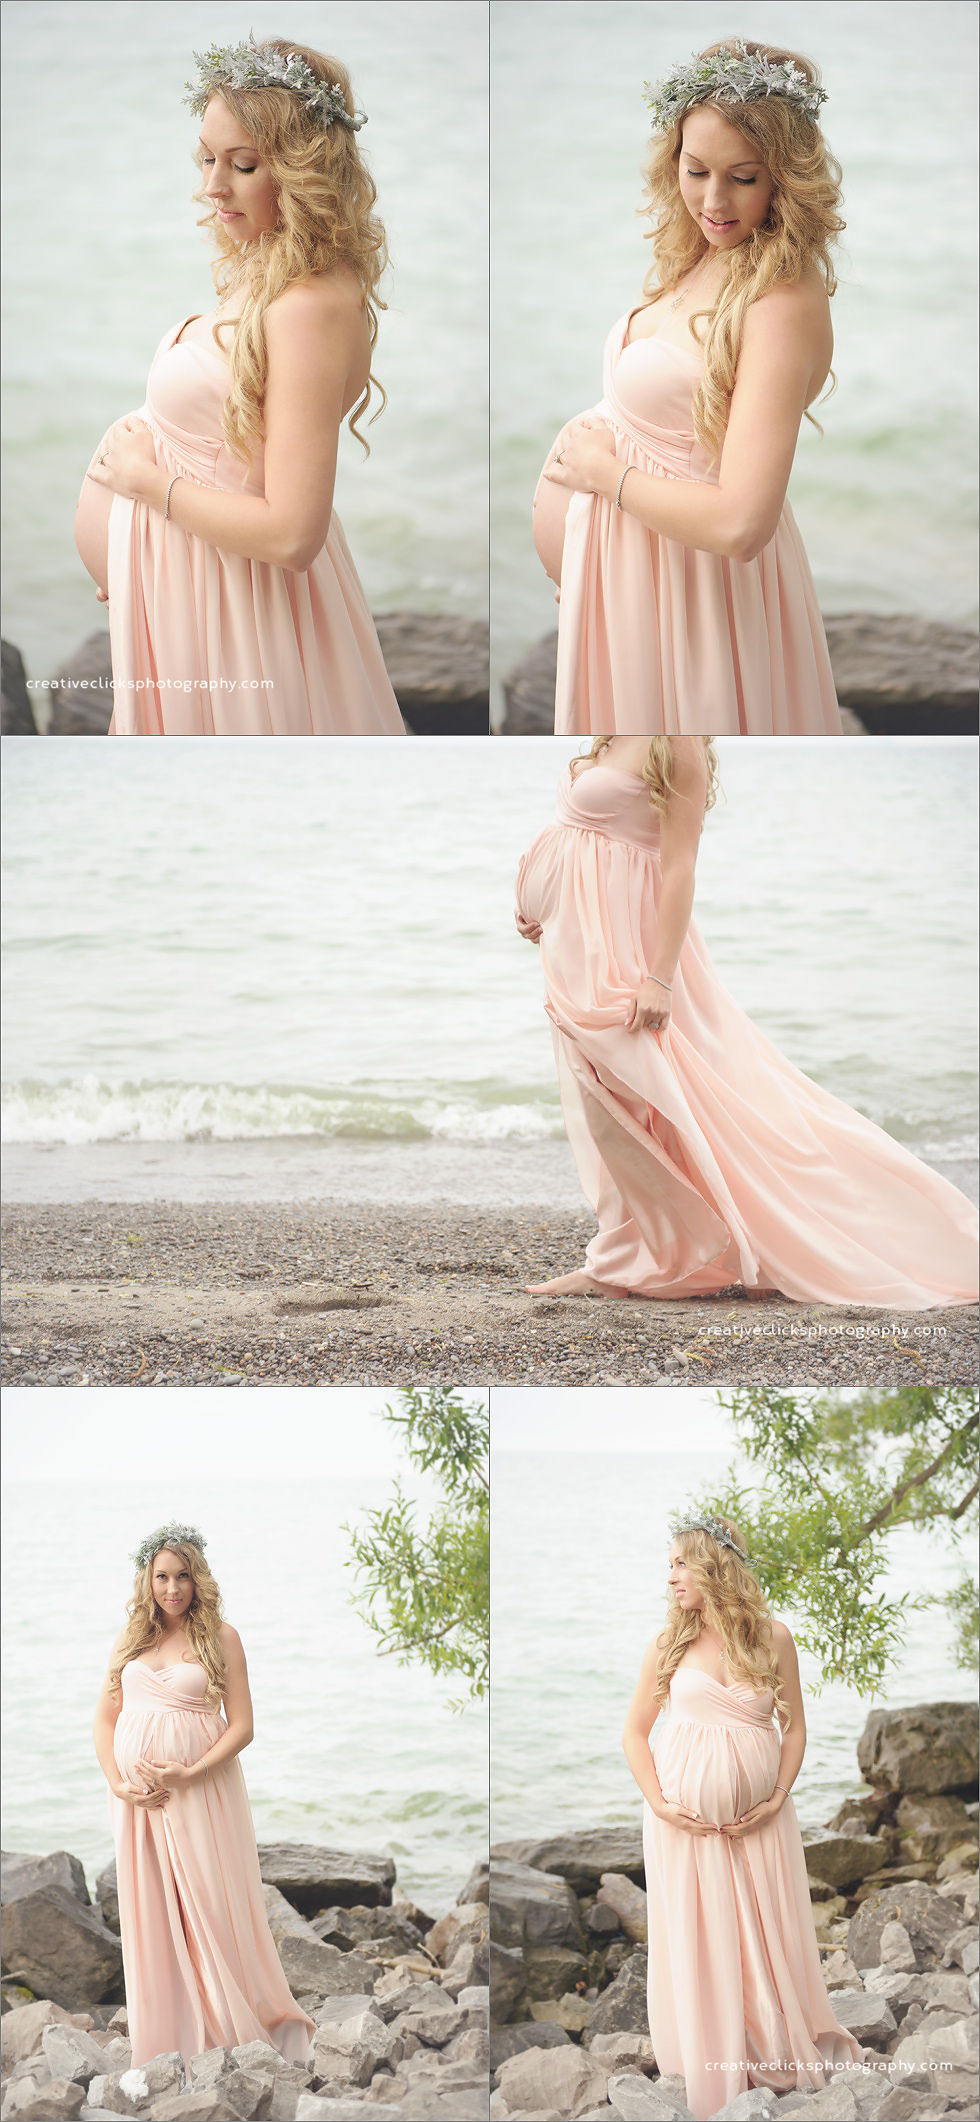 niagara maternity session on the beach